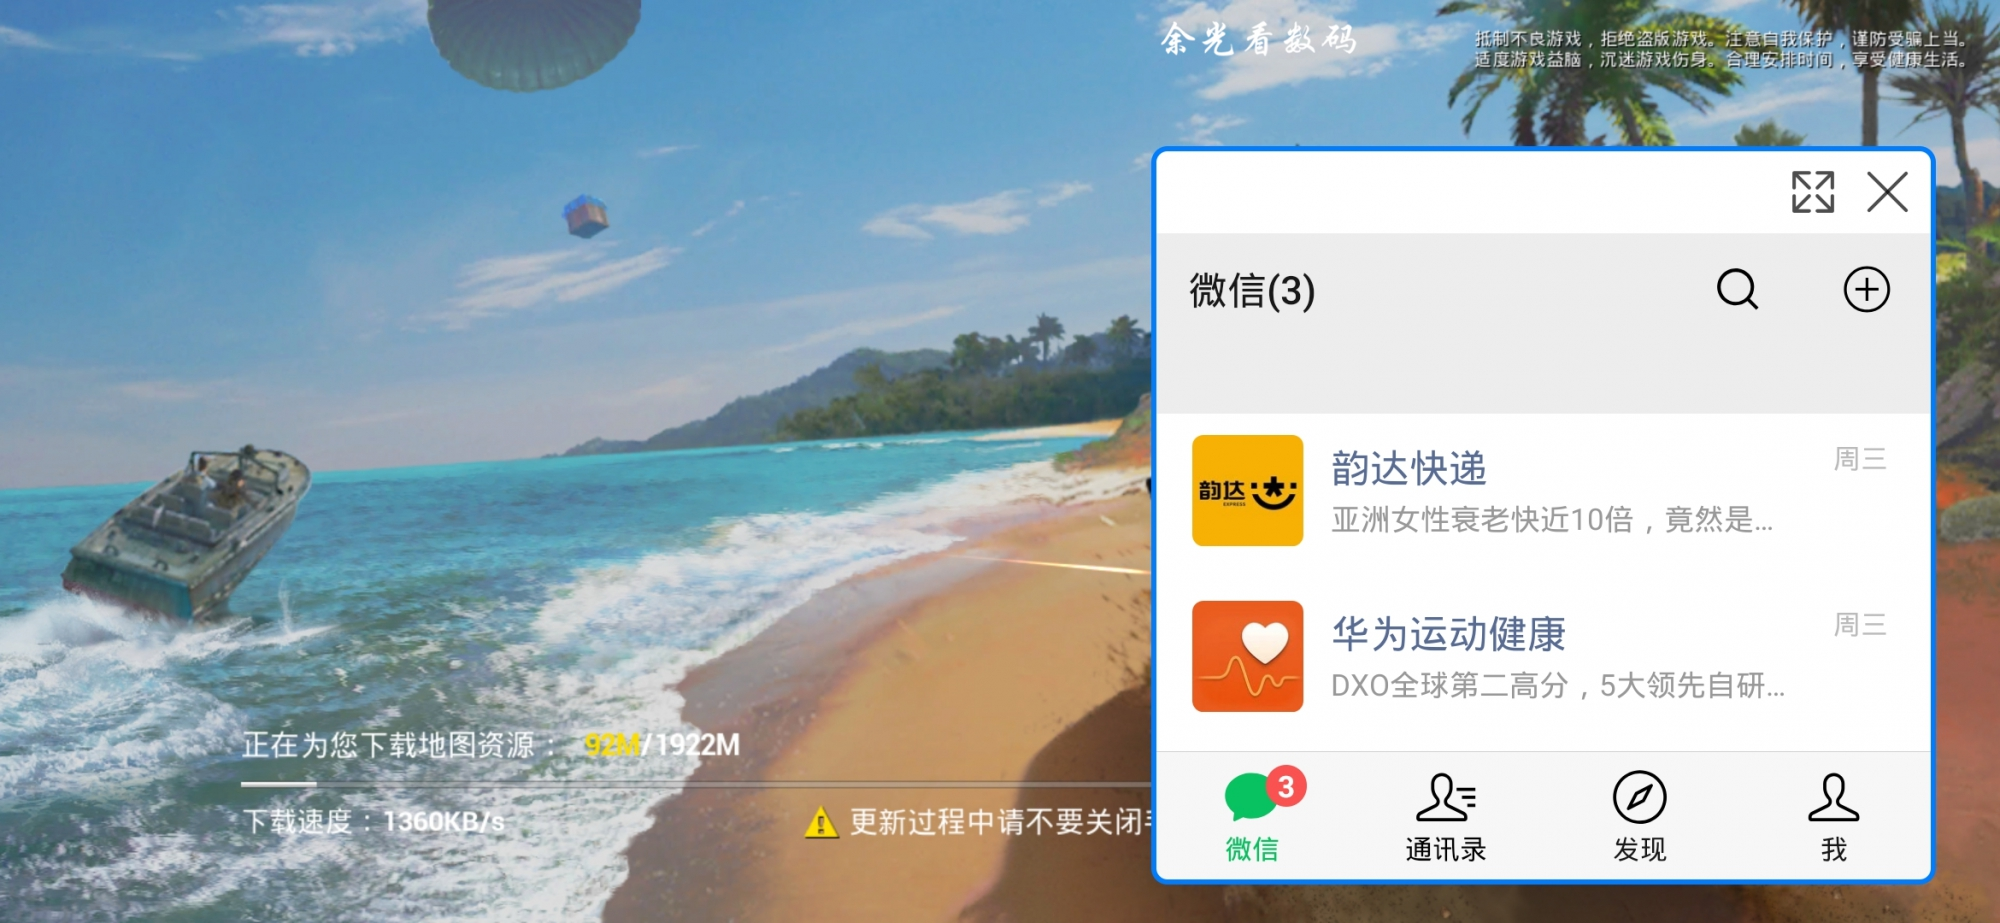 Screenshot_20190630_102551_com.tencent.mm.jpg